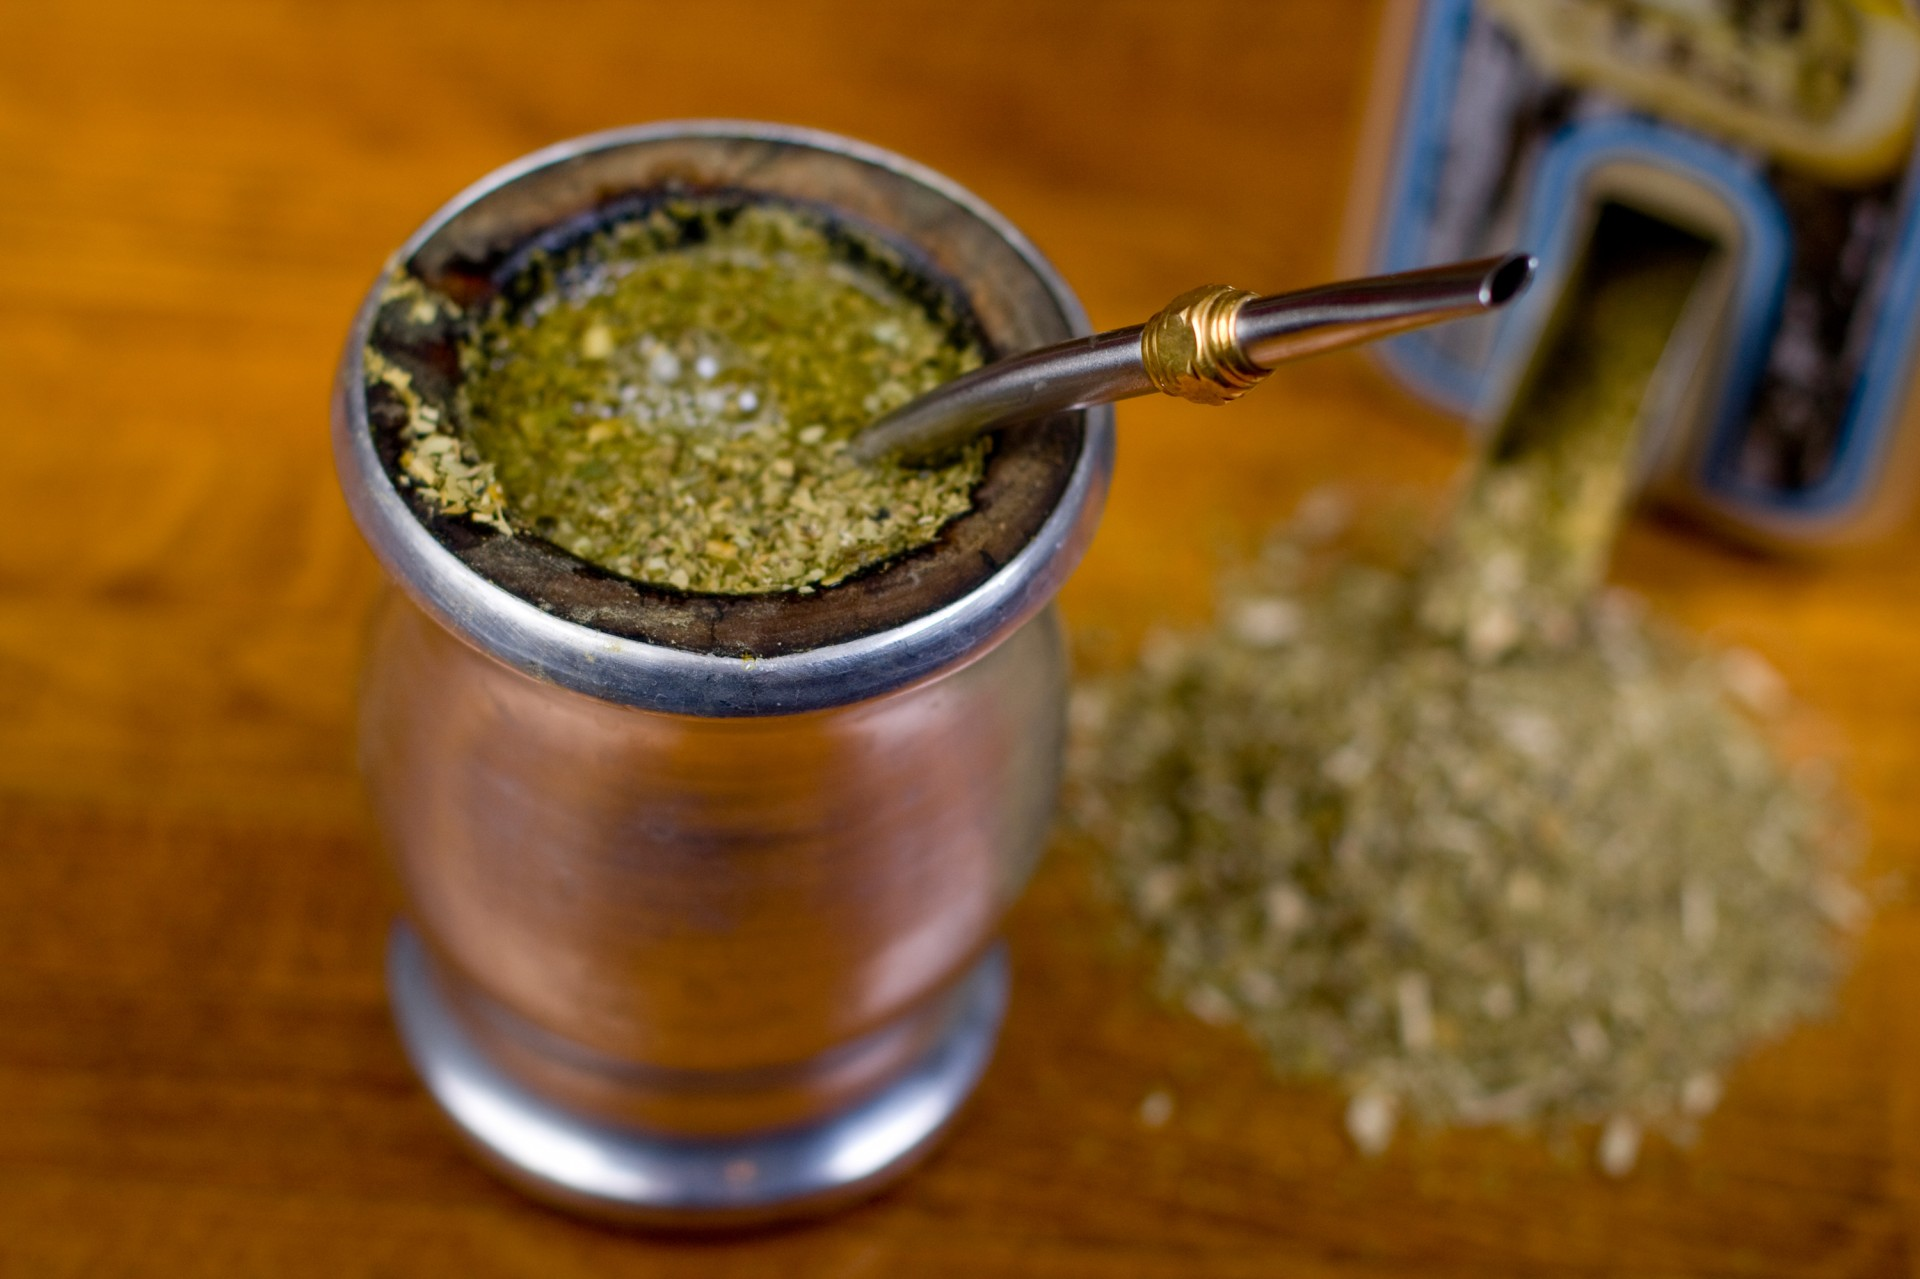 A gourd of yerba mate. Legend has it that the moon gifted this infusion to the Guaraní people of South America. Photo: iStockphoto